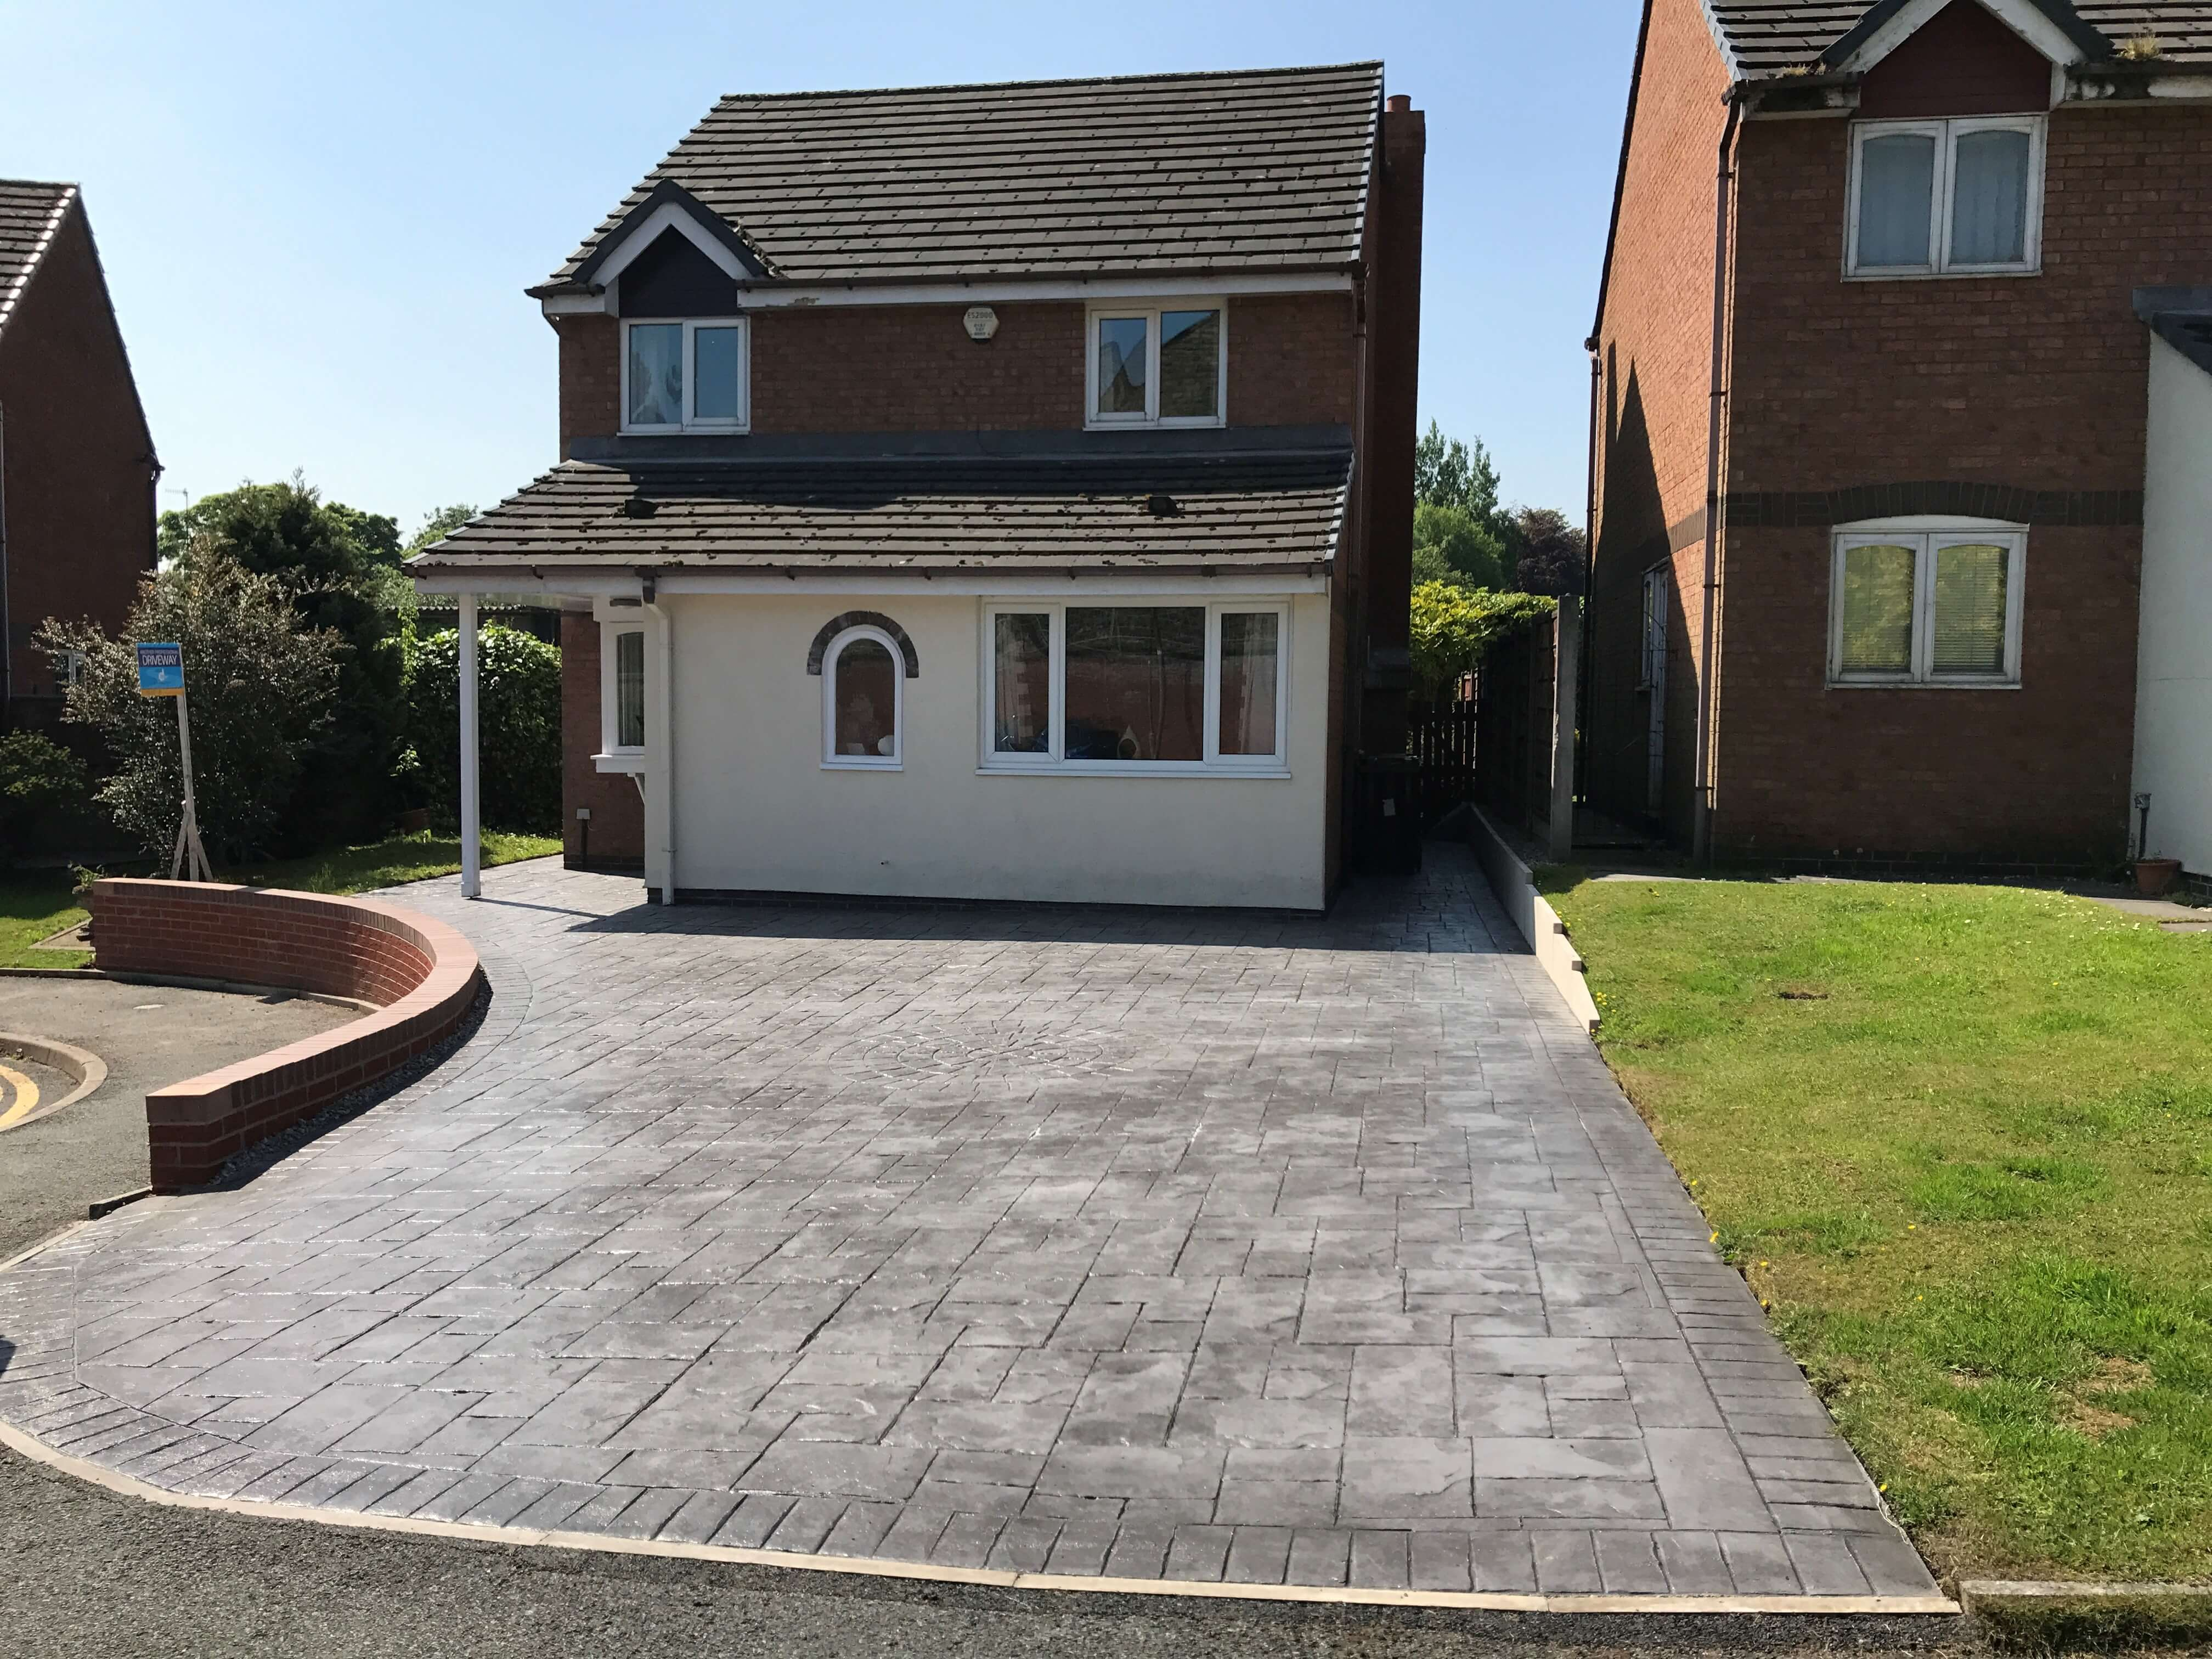 Driveway ideas design options complete driveway designs Home driveway design ideas